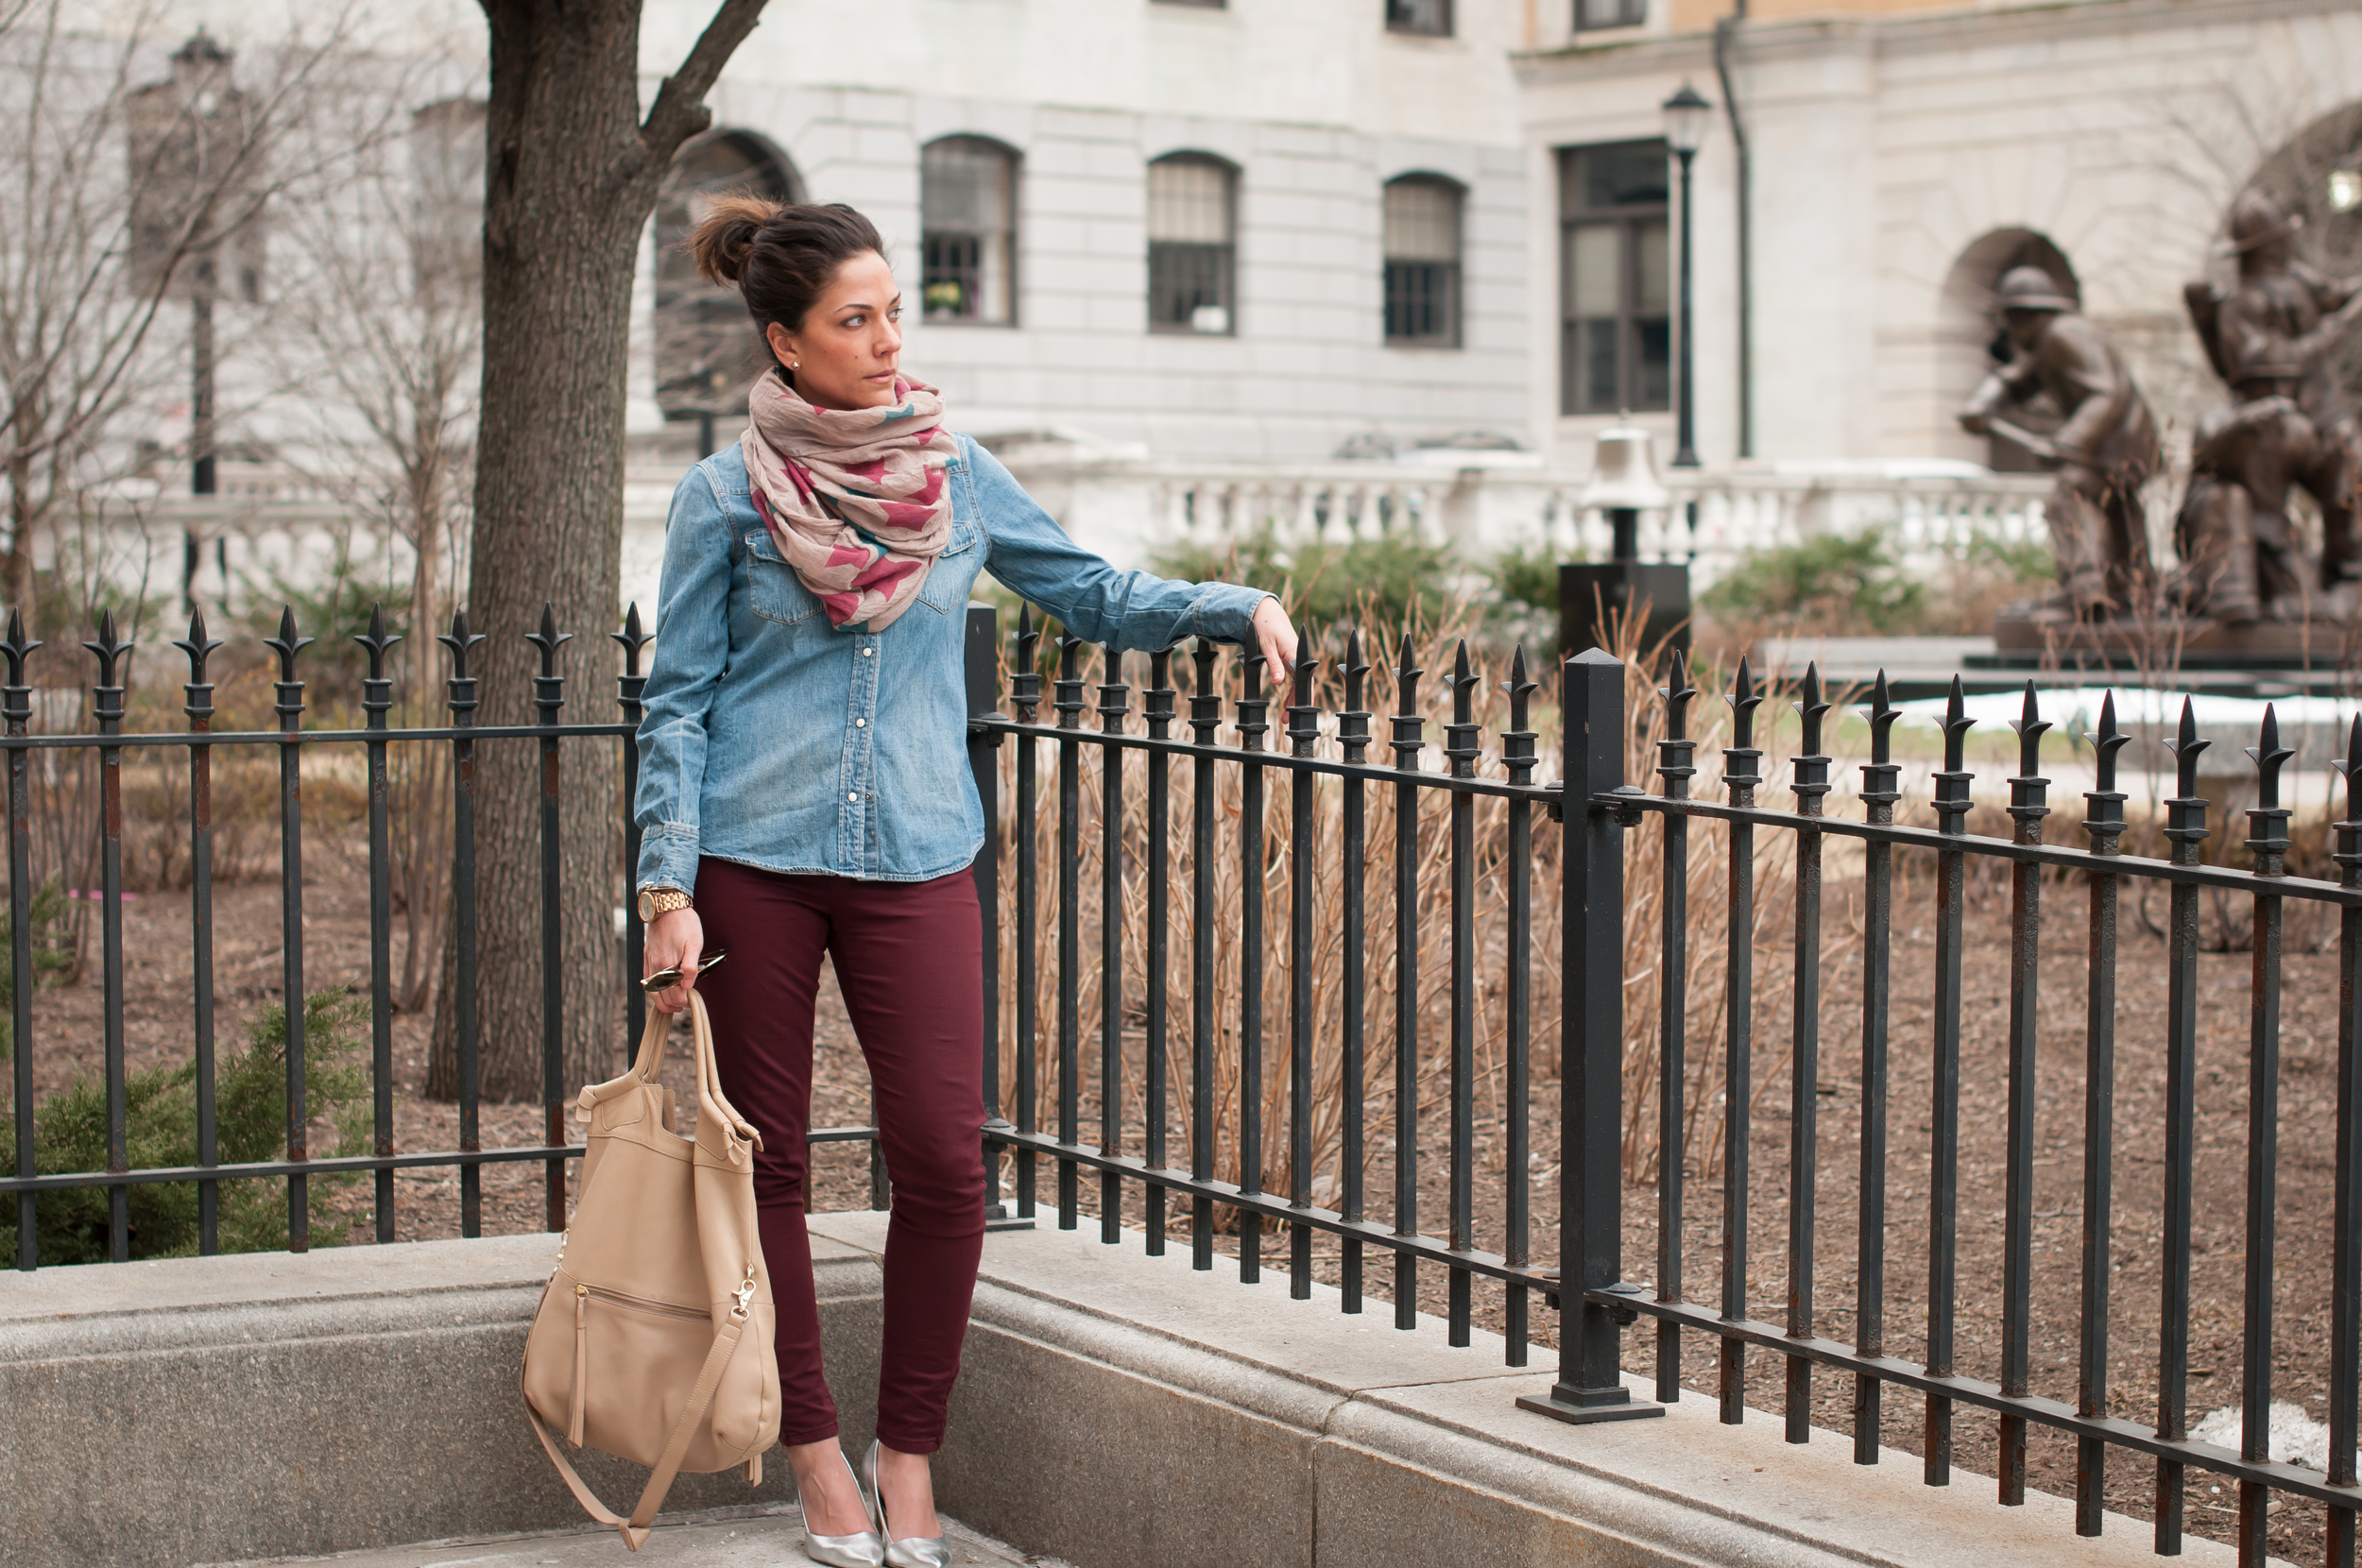 Zoe Emilie Star Infinity Scarf (GIFTED, find here ), J.Crew Denim Western shirt (old, see new color  here ), Zara Wine Colored Pants (old, see similar  here ), Foley and Corinna Mid City Tote ( here ), Silver Pumps (similar  here ).All Photos courtesy of William Mann Photography